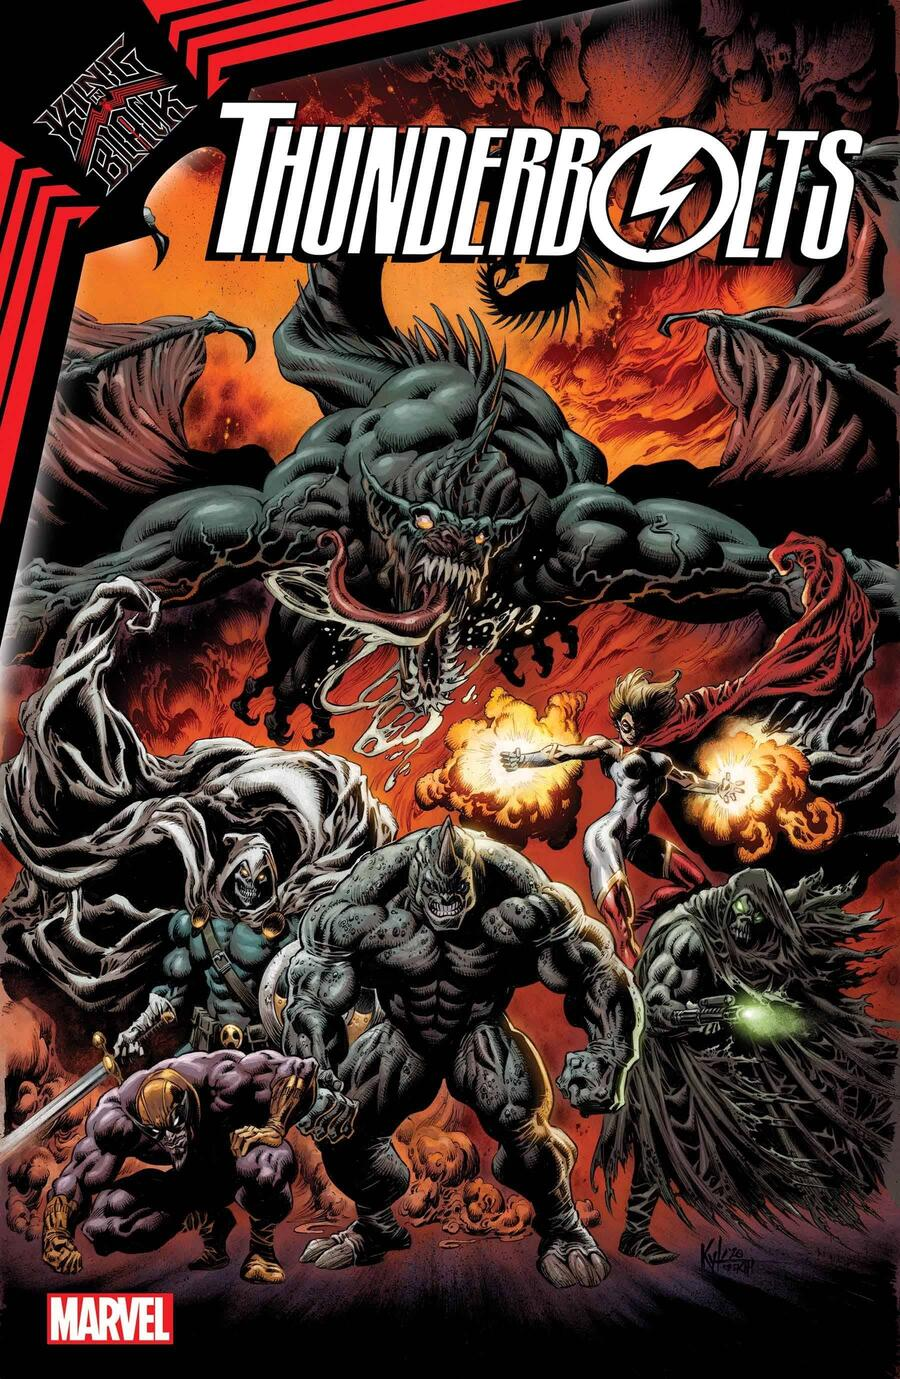 KING IN BLACK THUNDERBOLTS #1